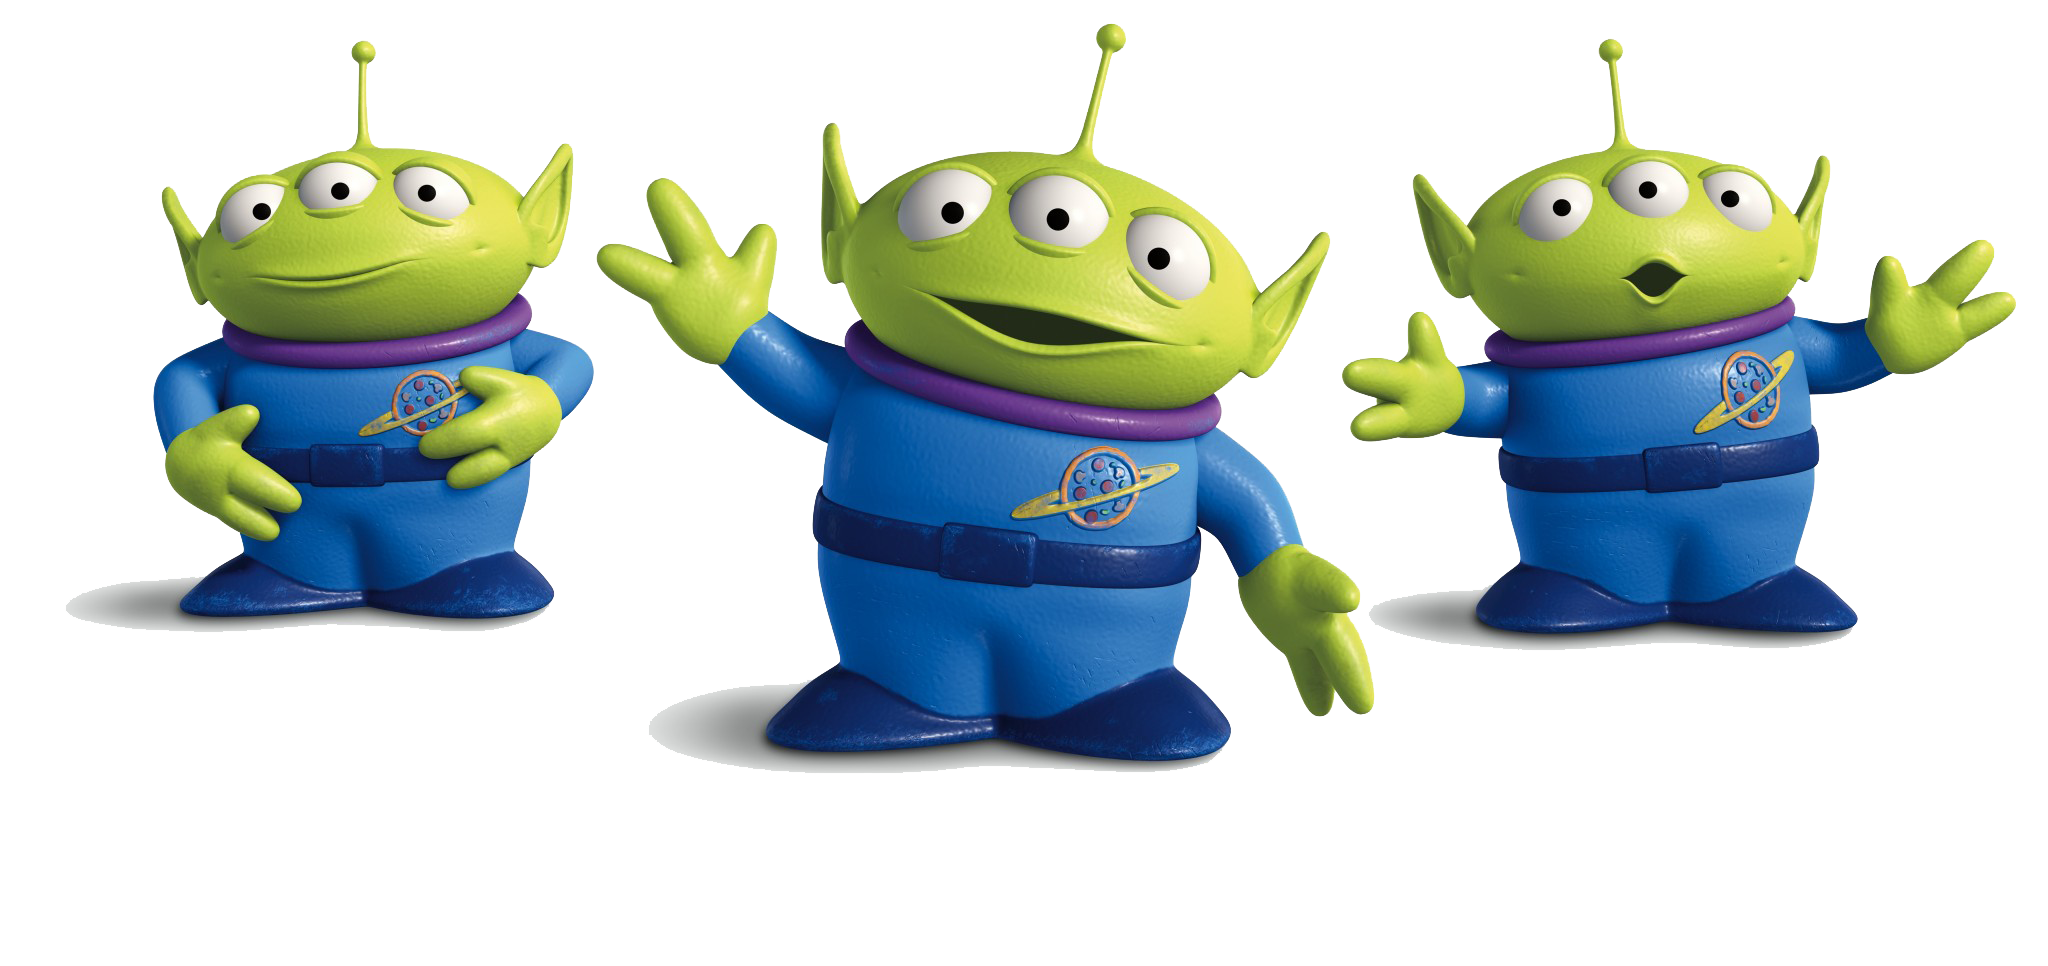 Download Toy Story Alien Photos HQ PNG Image   FreePNGImg